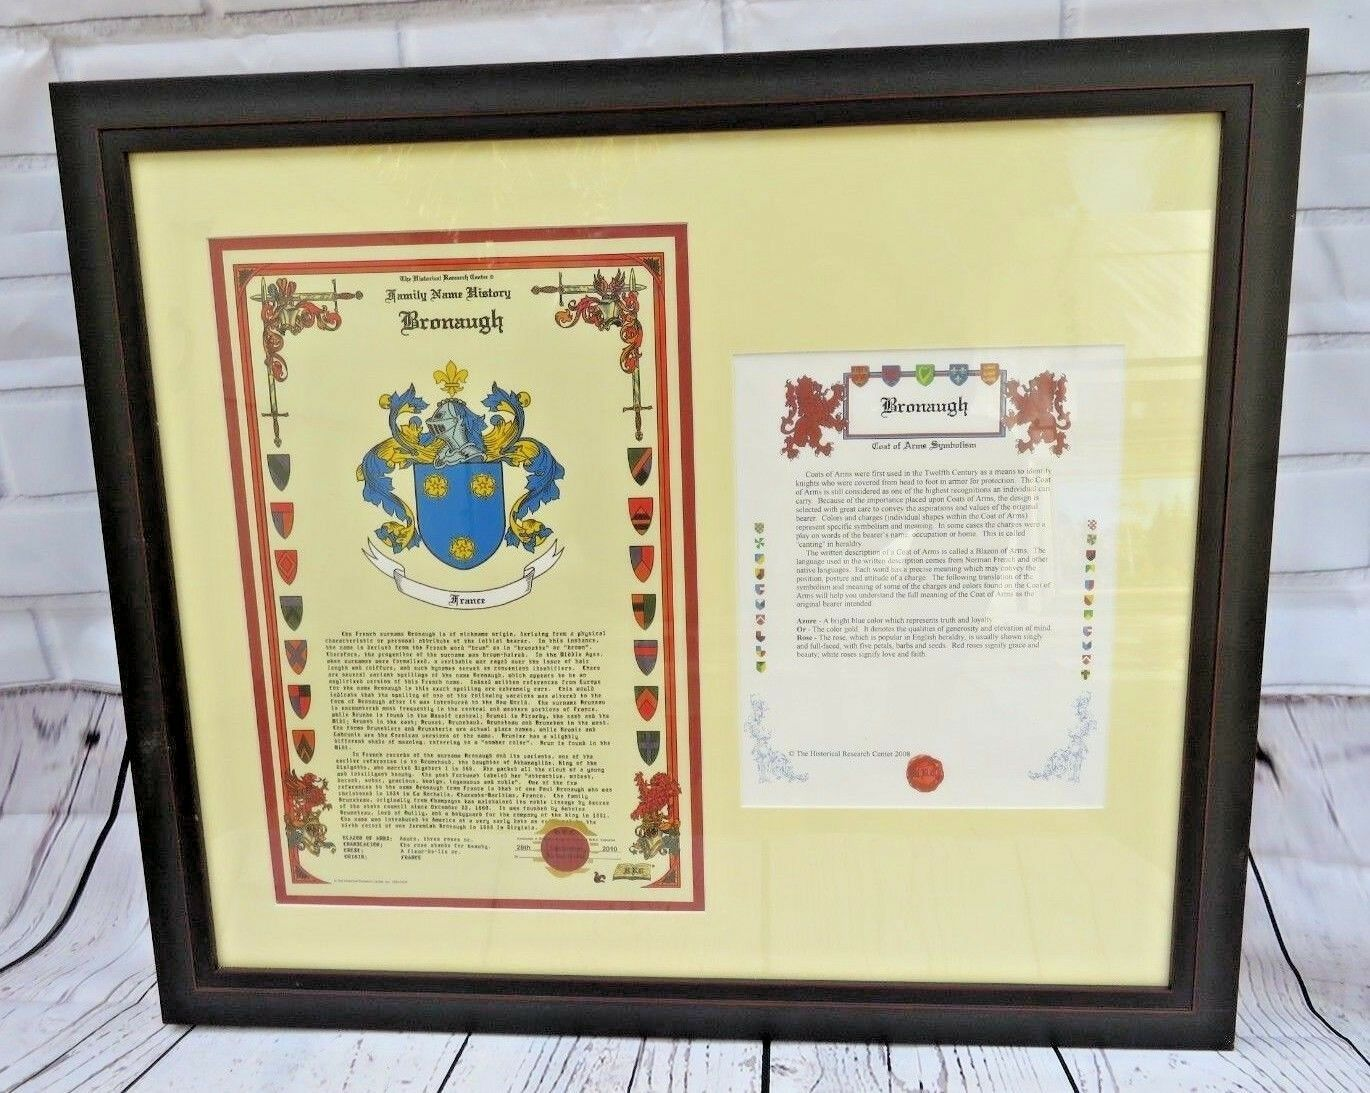 Primary image for BRONAUGH family name history CREST COAT OF ARMS HISTORICAL RESEARCH CENTER FRAME